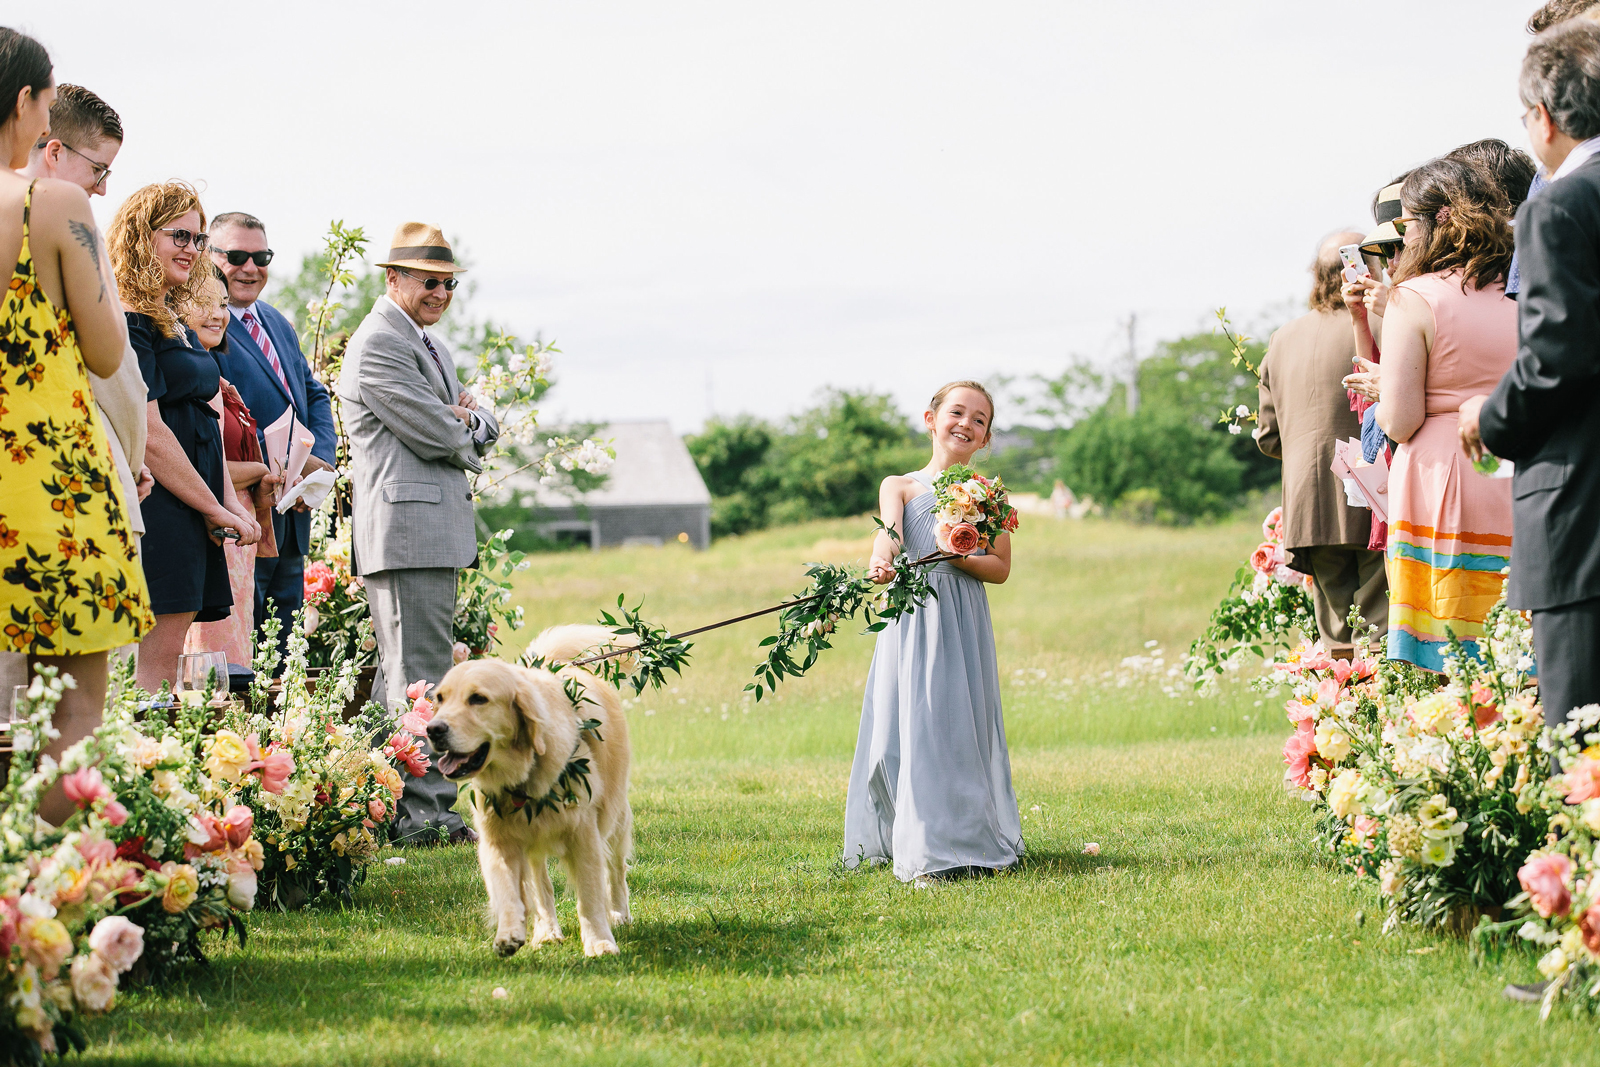 flower girl with dog during wedding processional